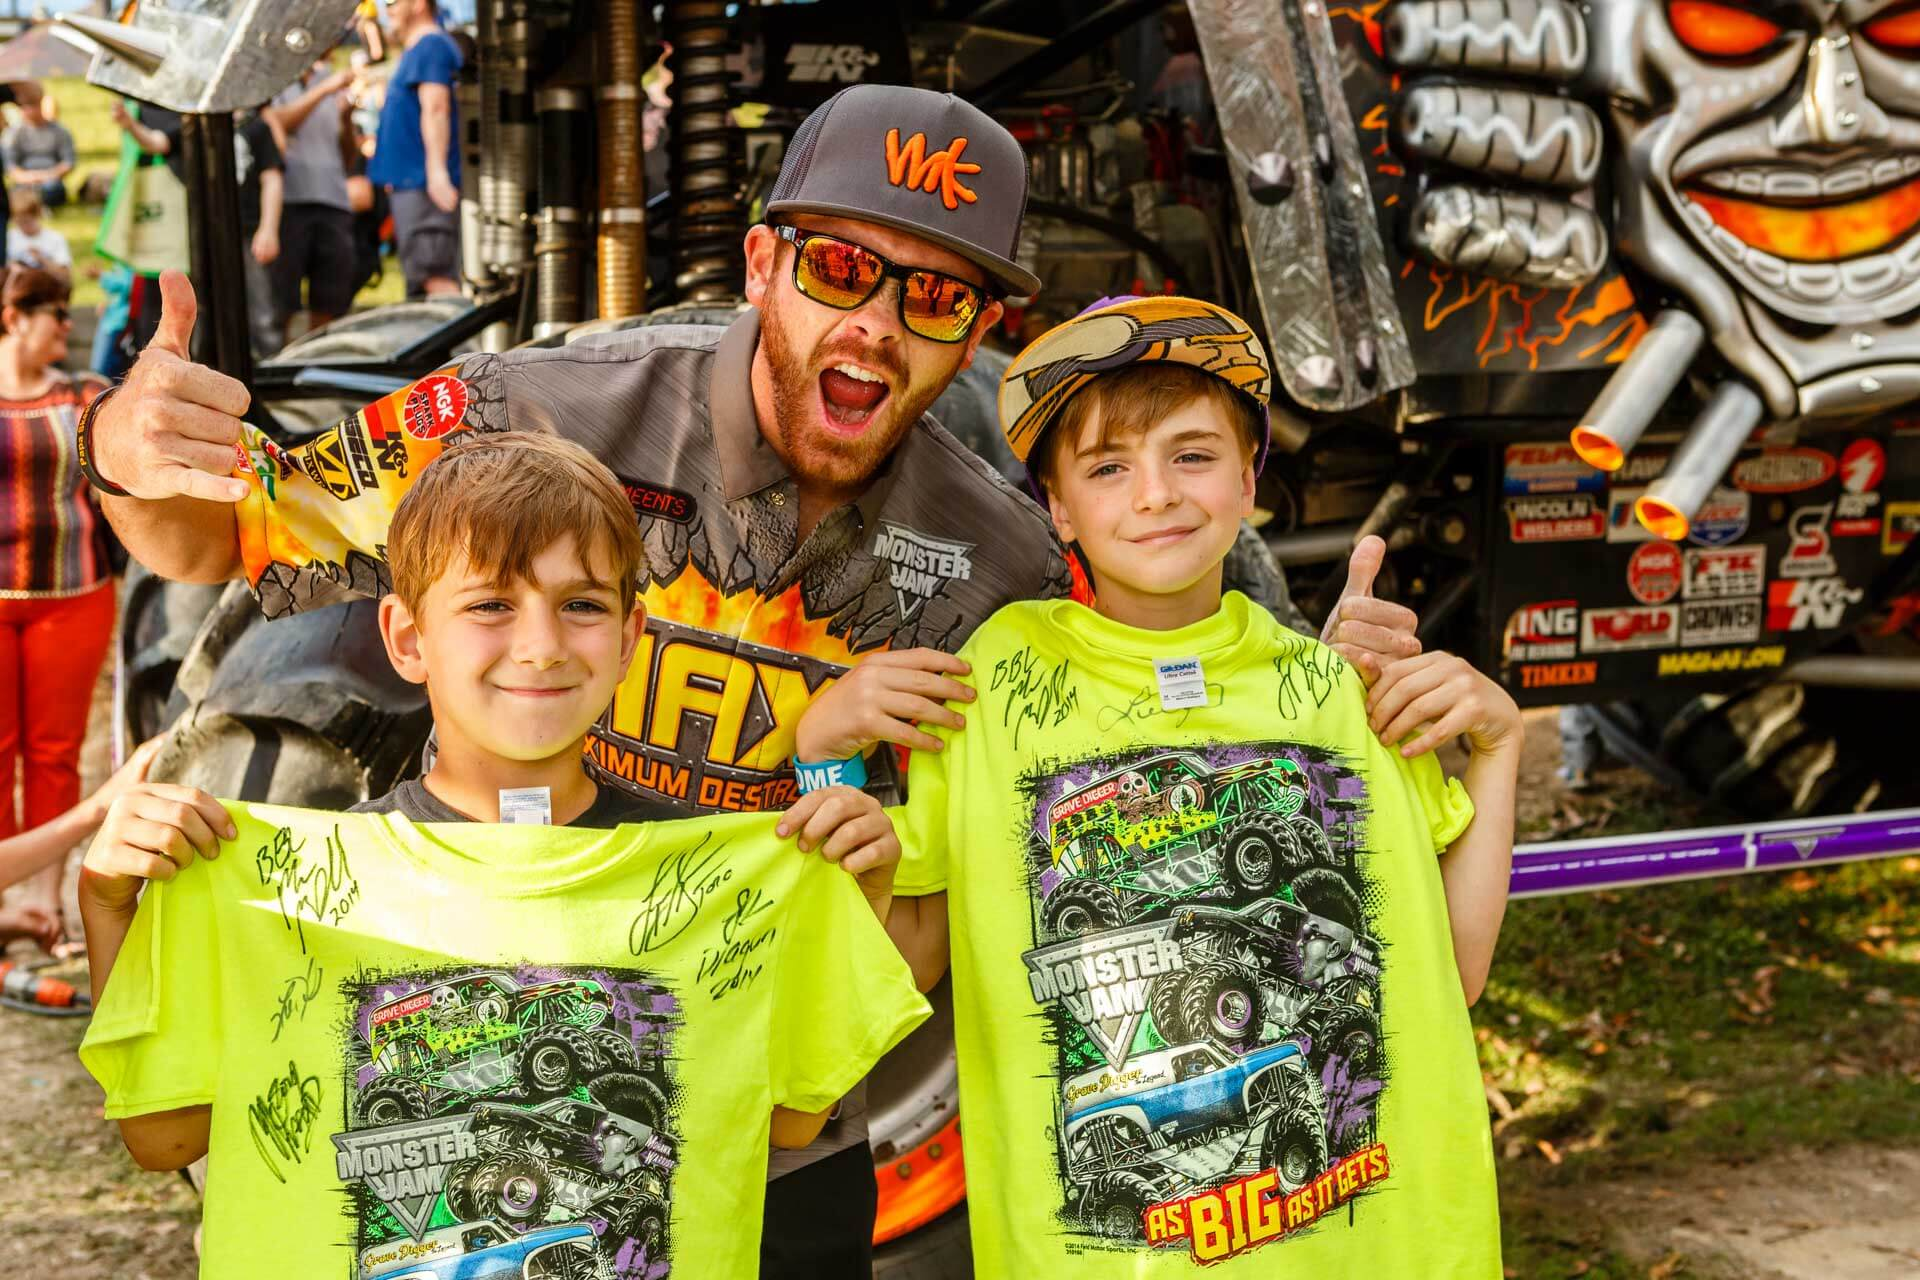 monster jam max-d driver posing with two boys holding up monster jam autographed bright yellow t-shirts in front of max-d monster truck